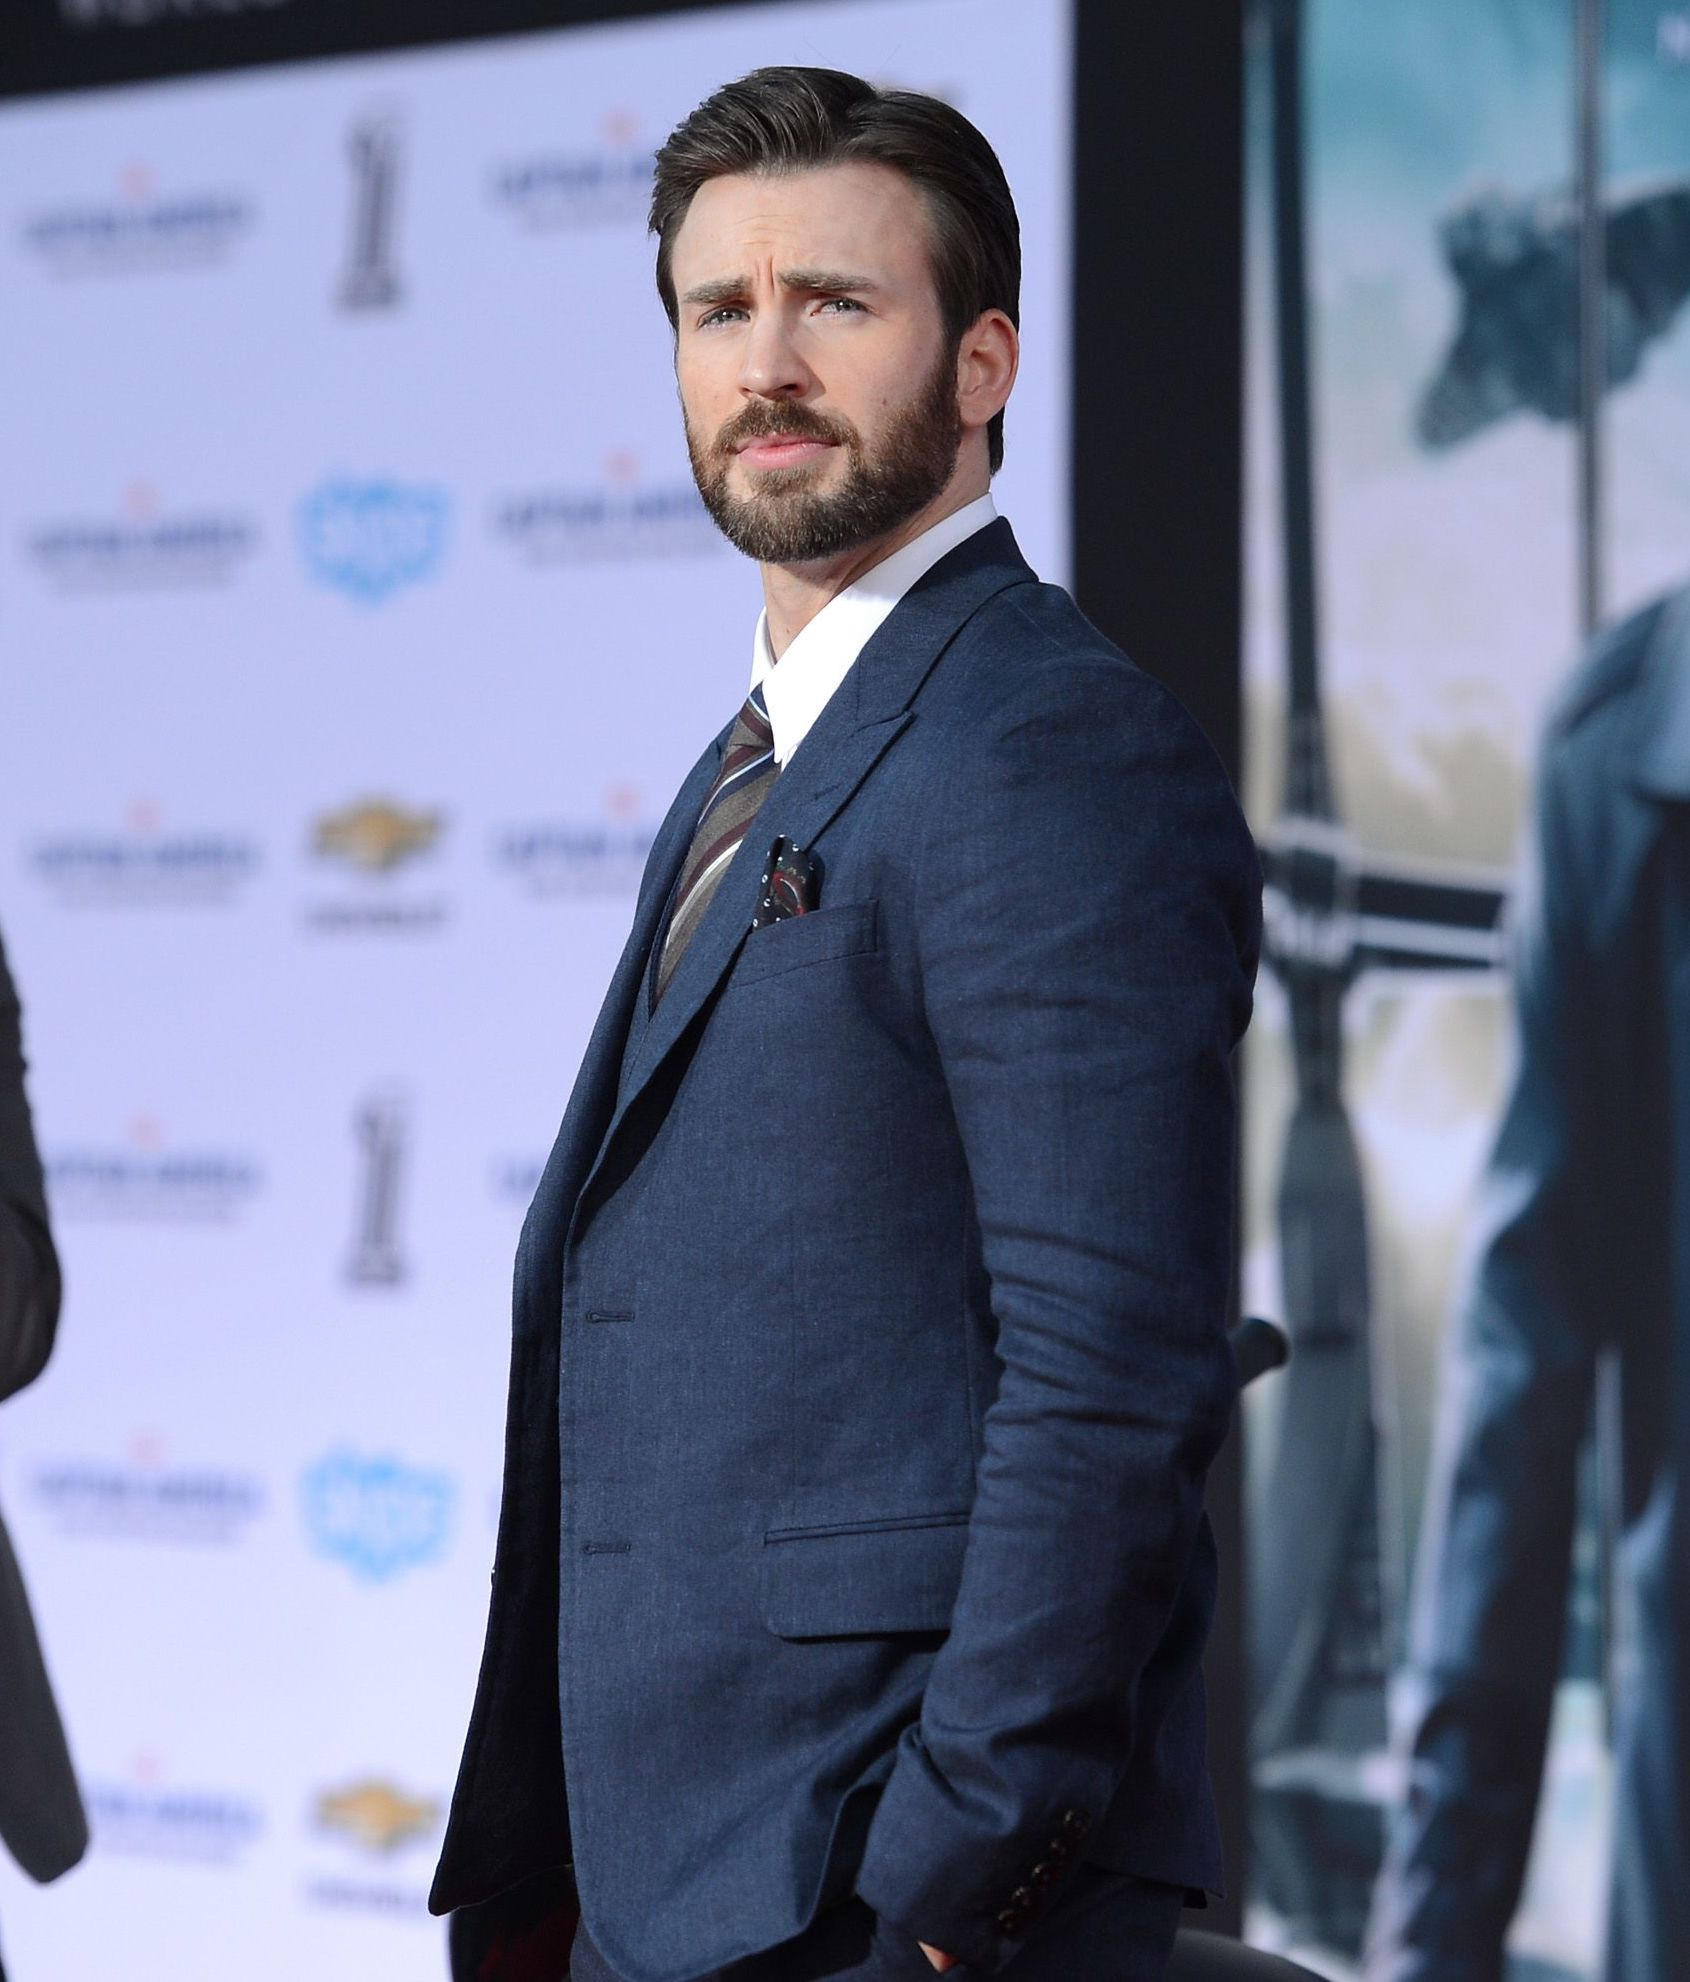 actor chris evans arrives for the premiere of marvels news photo 478498743 1549371790 20 Facts You Never Knew About The Cast Of The Marvel Cinematic Universe